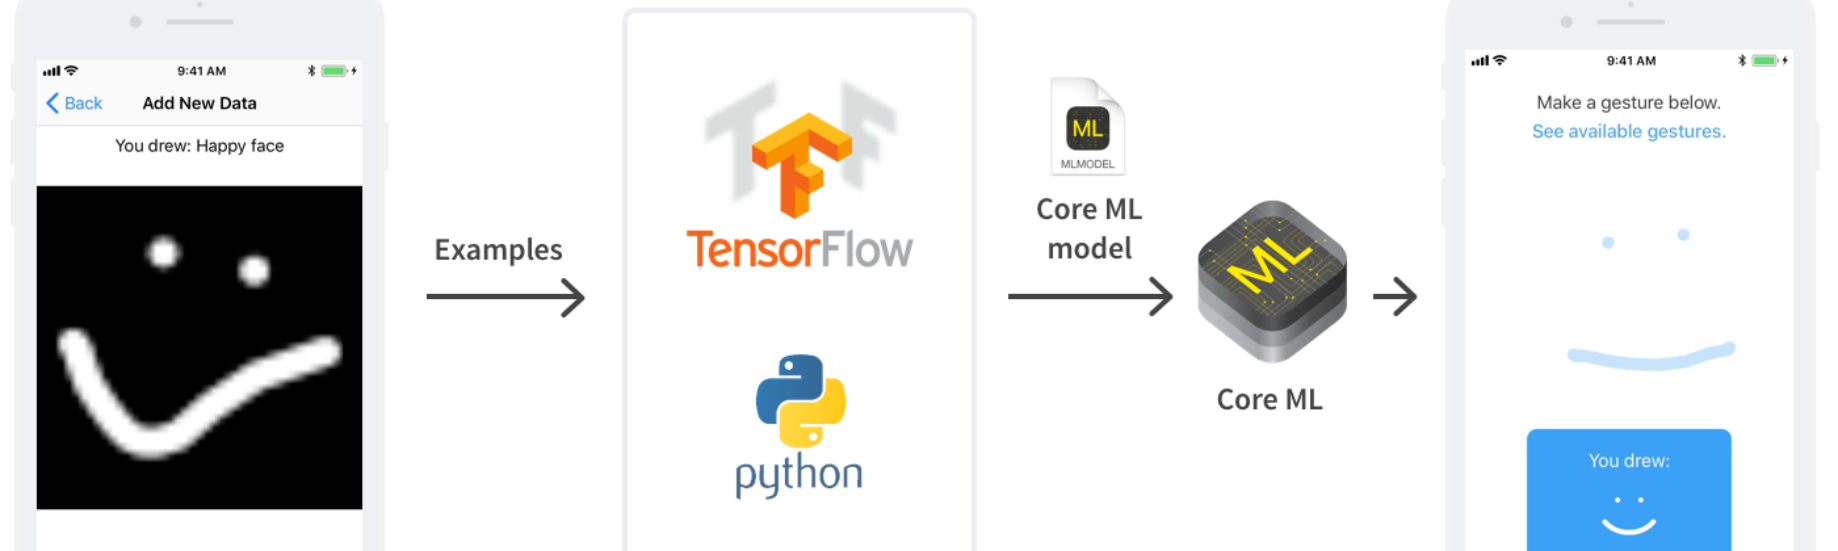 Smart Gesture Recognition in iOS 11 with Core ML and TensorFlow